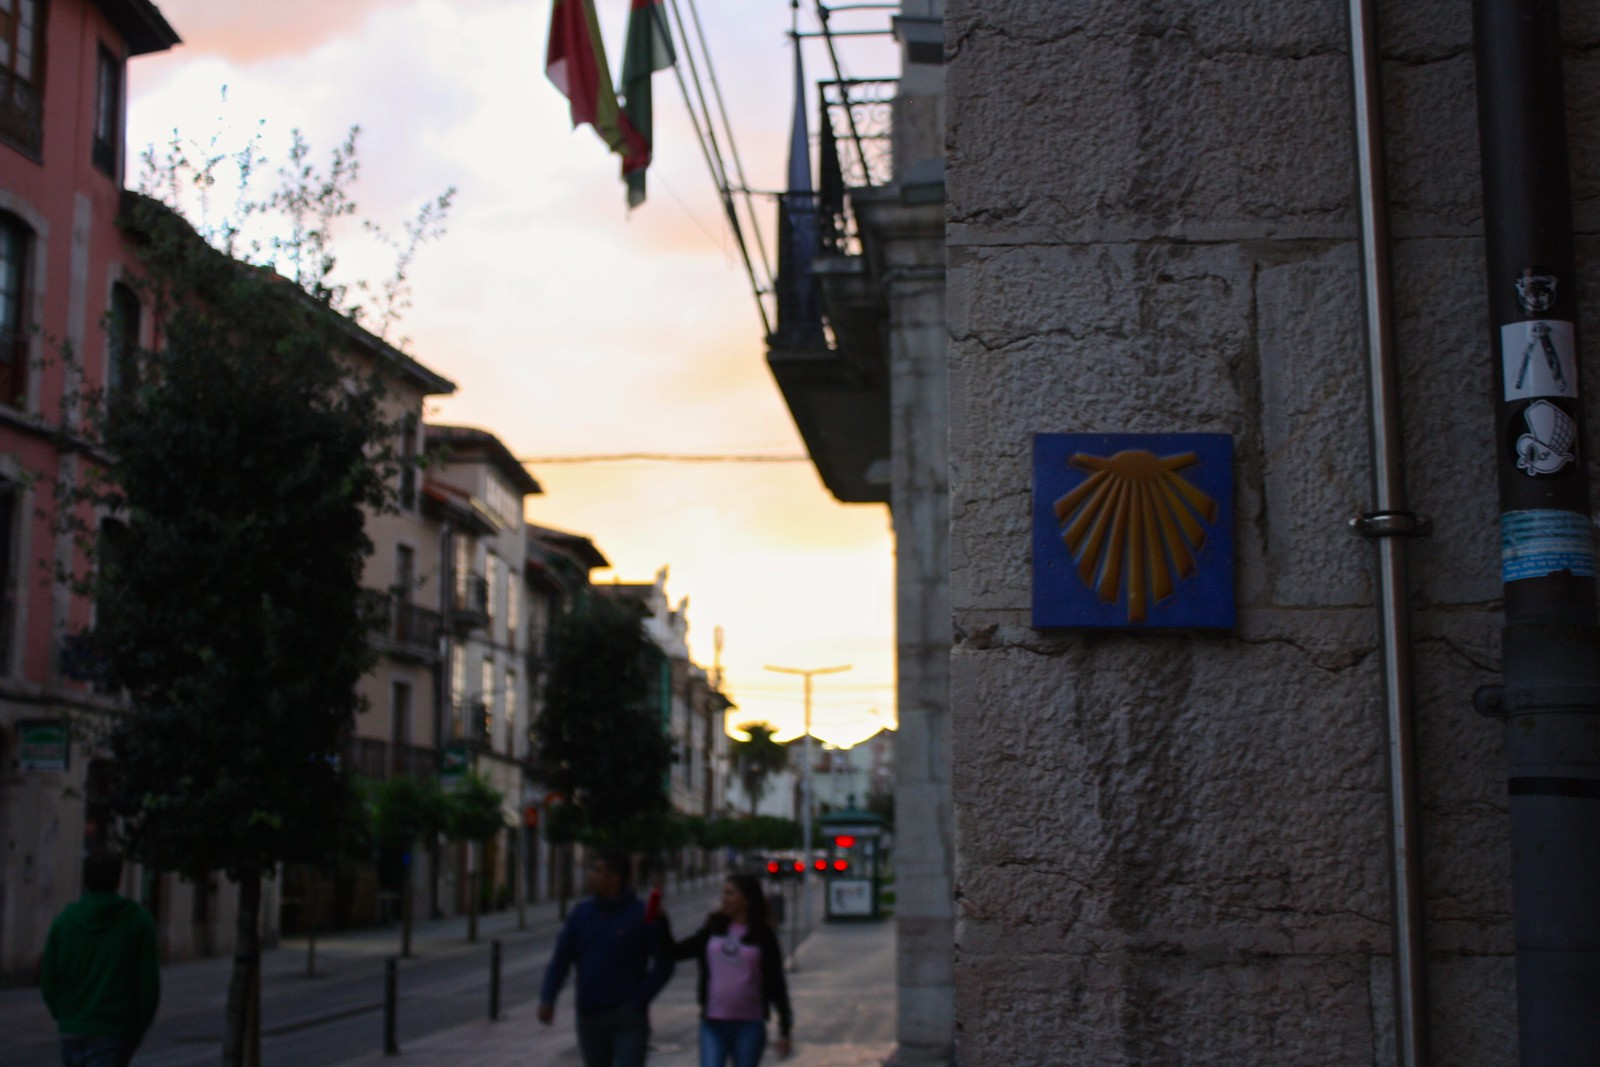 Camino de Santiago in Llanes, Spain